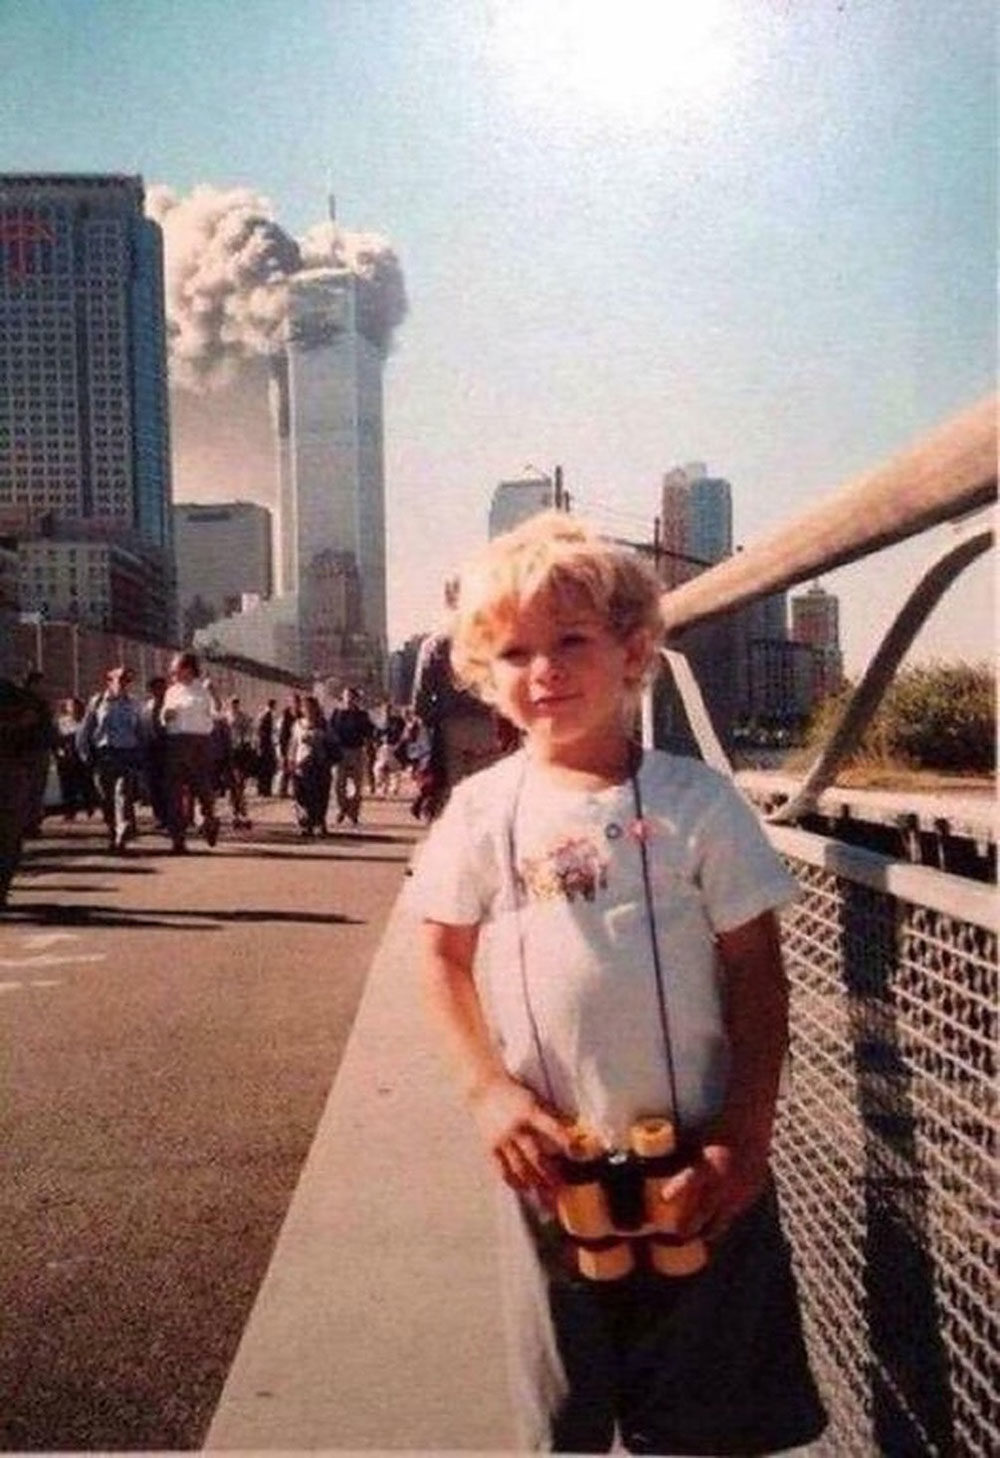 A frequently circulated viral photo, which shows a smiling kid in front of one of the burning World Trade Center towers (courtesy Underunderstood)